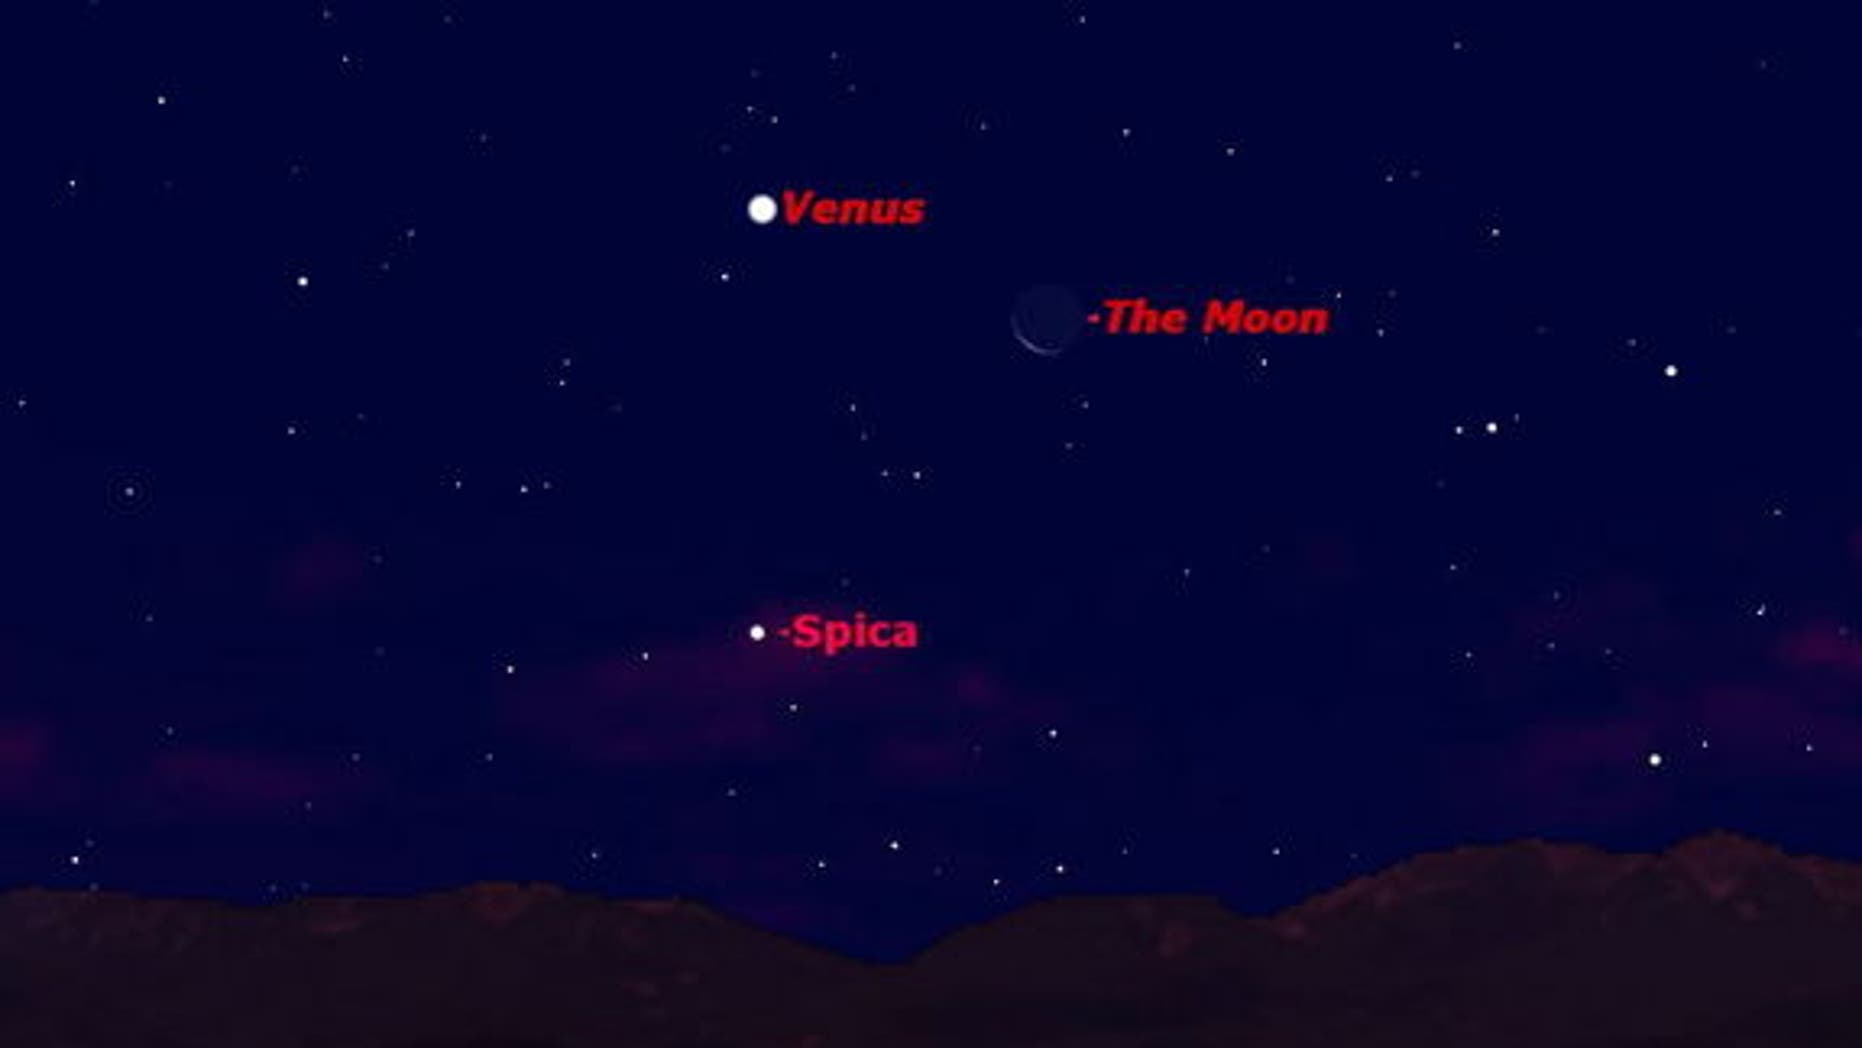 Sun., Nov. 11, 6 a.m. About an hour before sunrise, the moon joins the planet Venus and the bright star Spica in the morning sky.